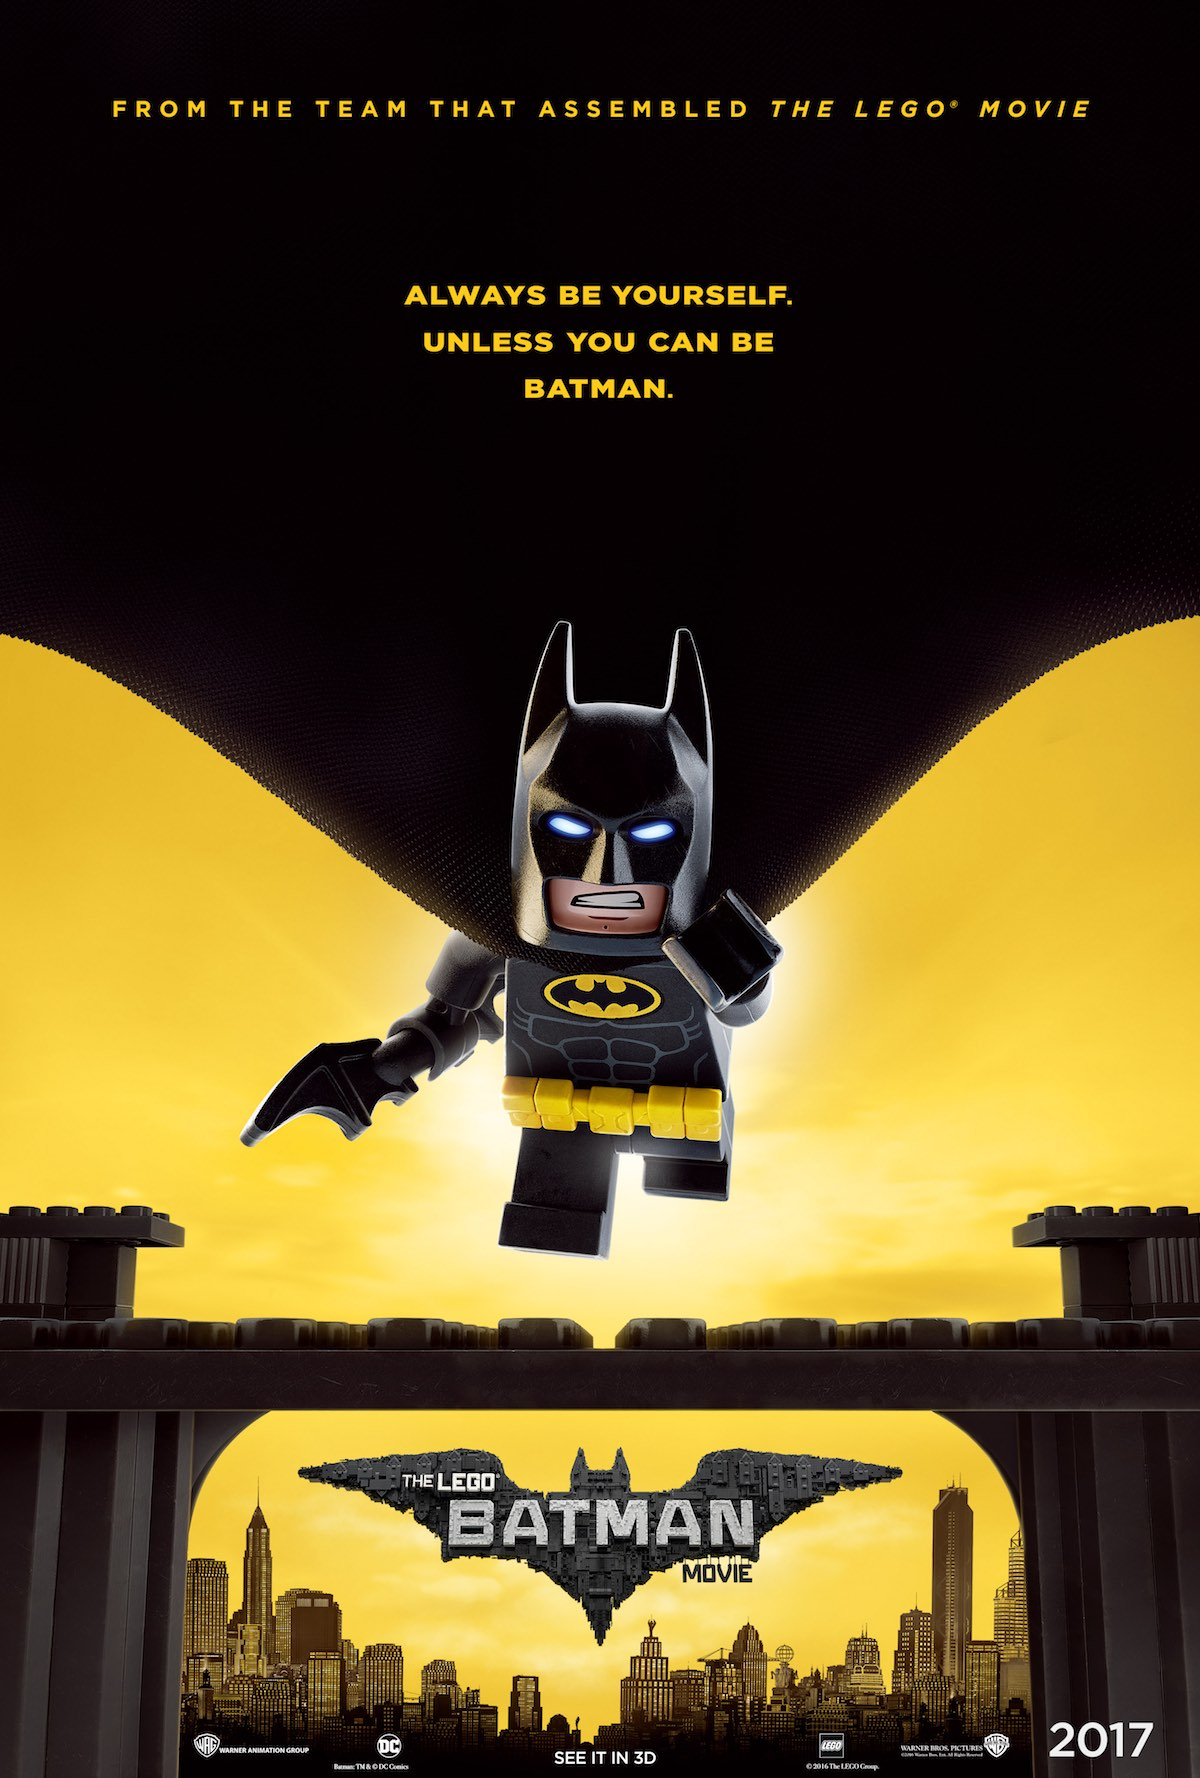 leg_batman_poster_1200_tall